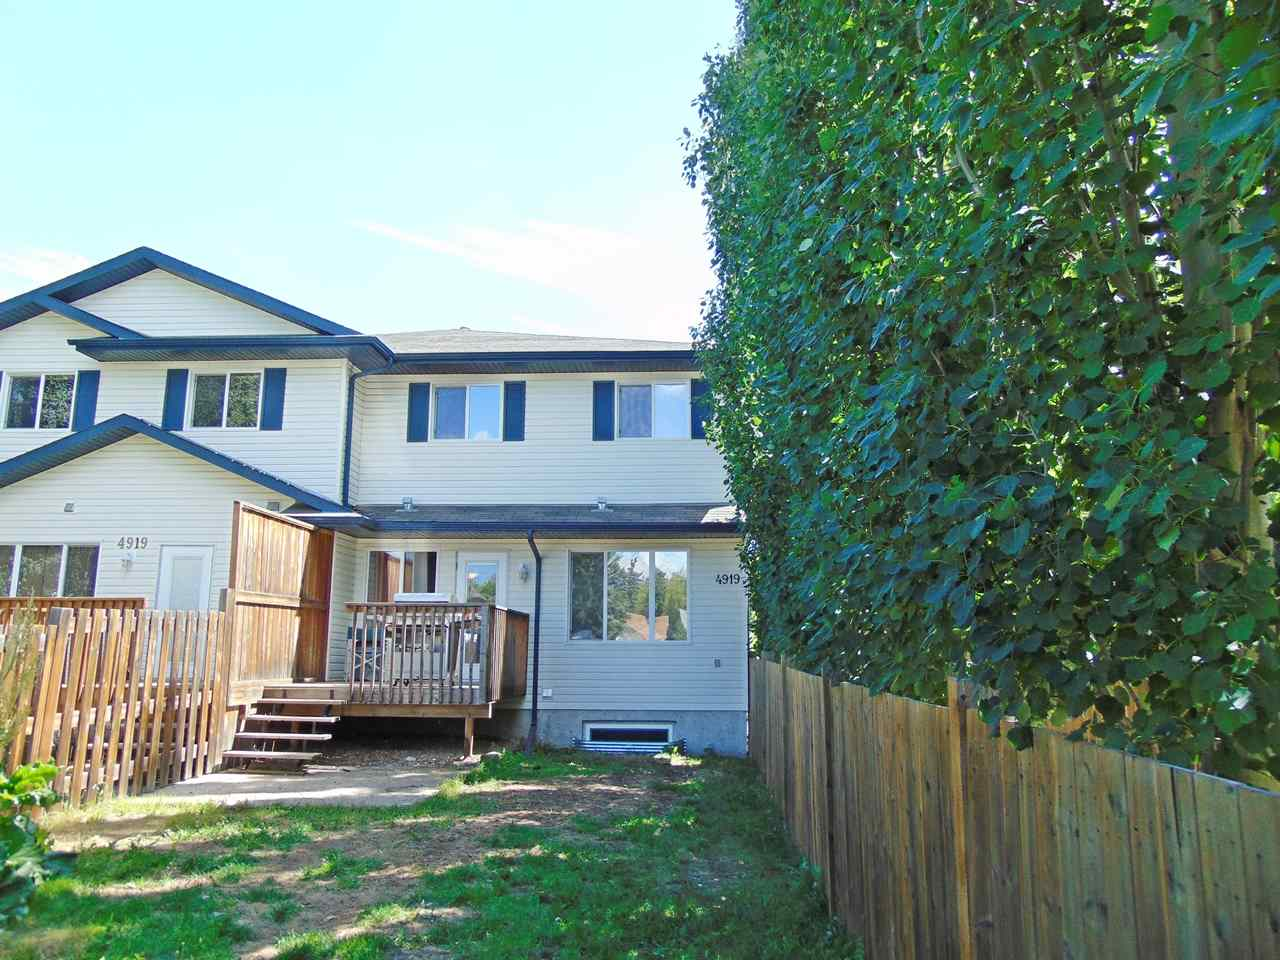 Main Photo: C 4919 50 Street: Gibbons Townhouse for sale : MLS® # E4069475